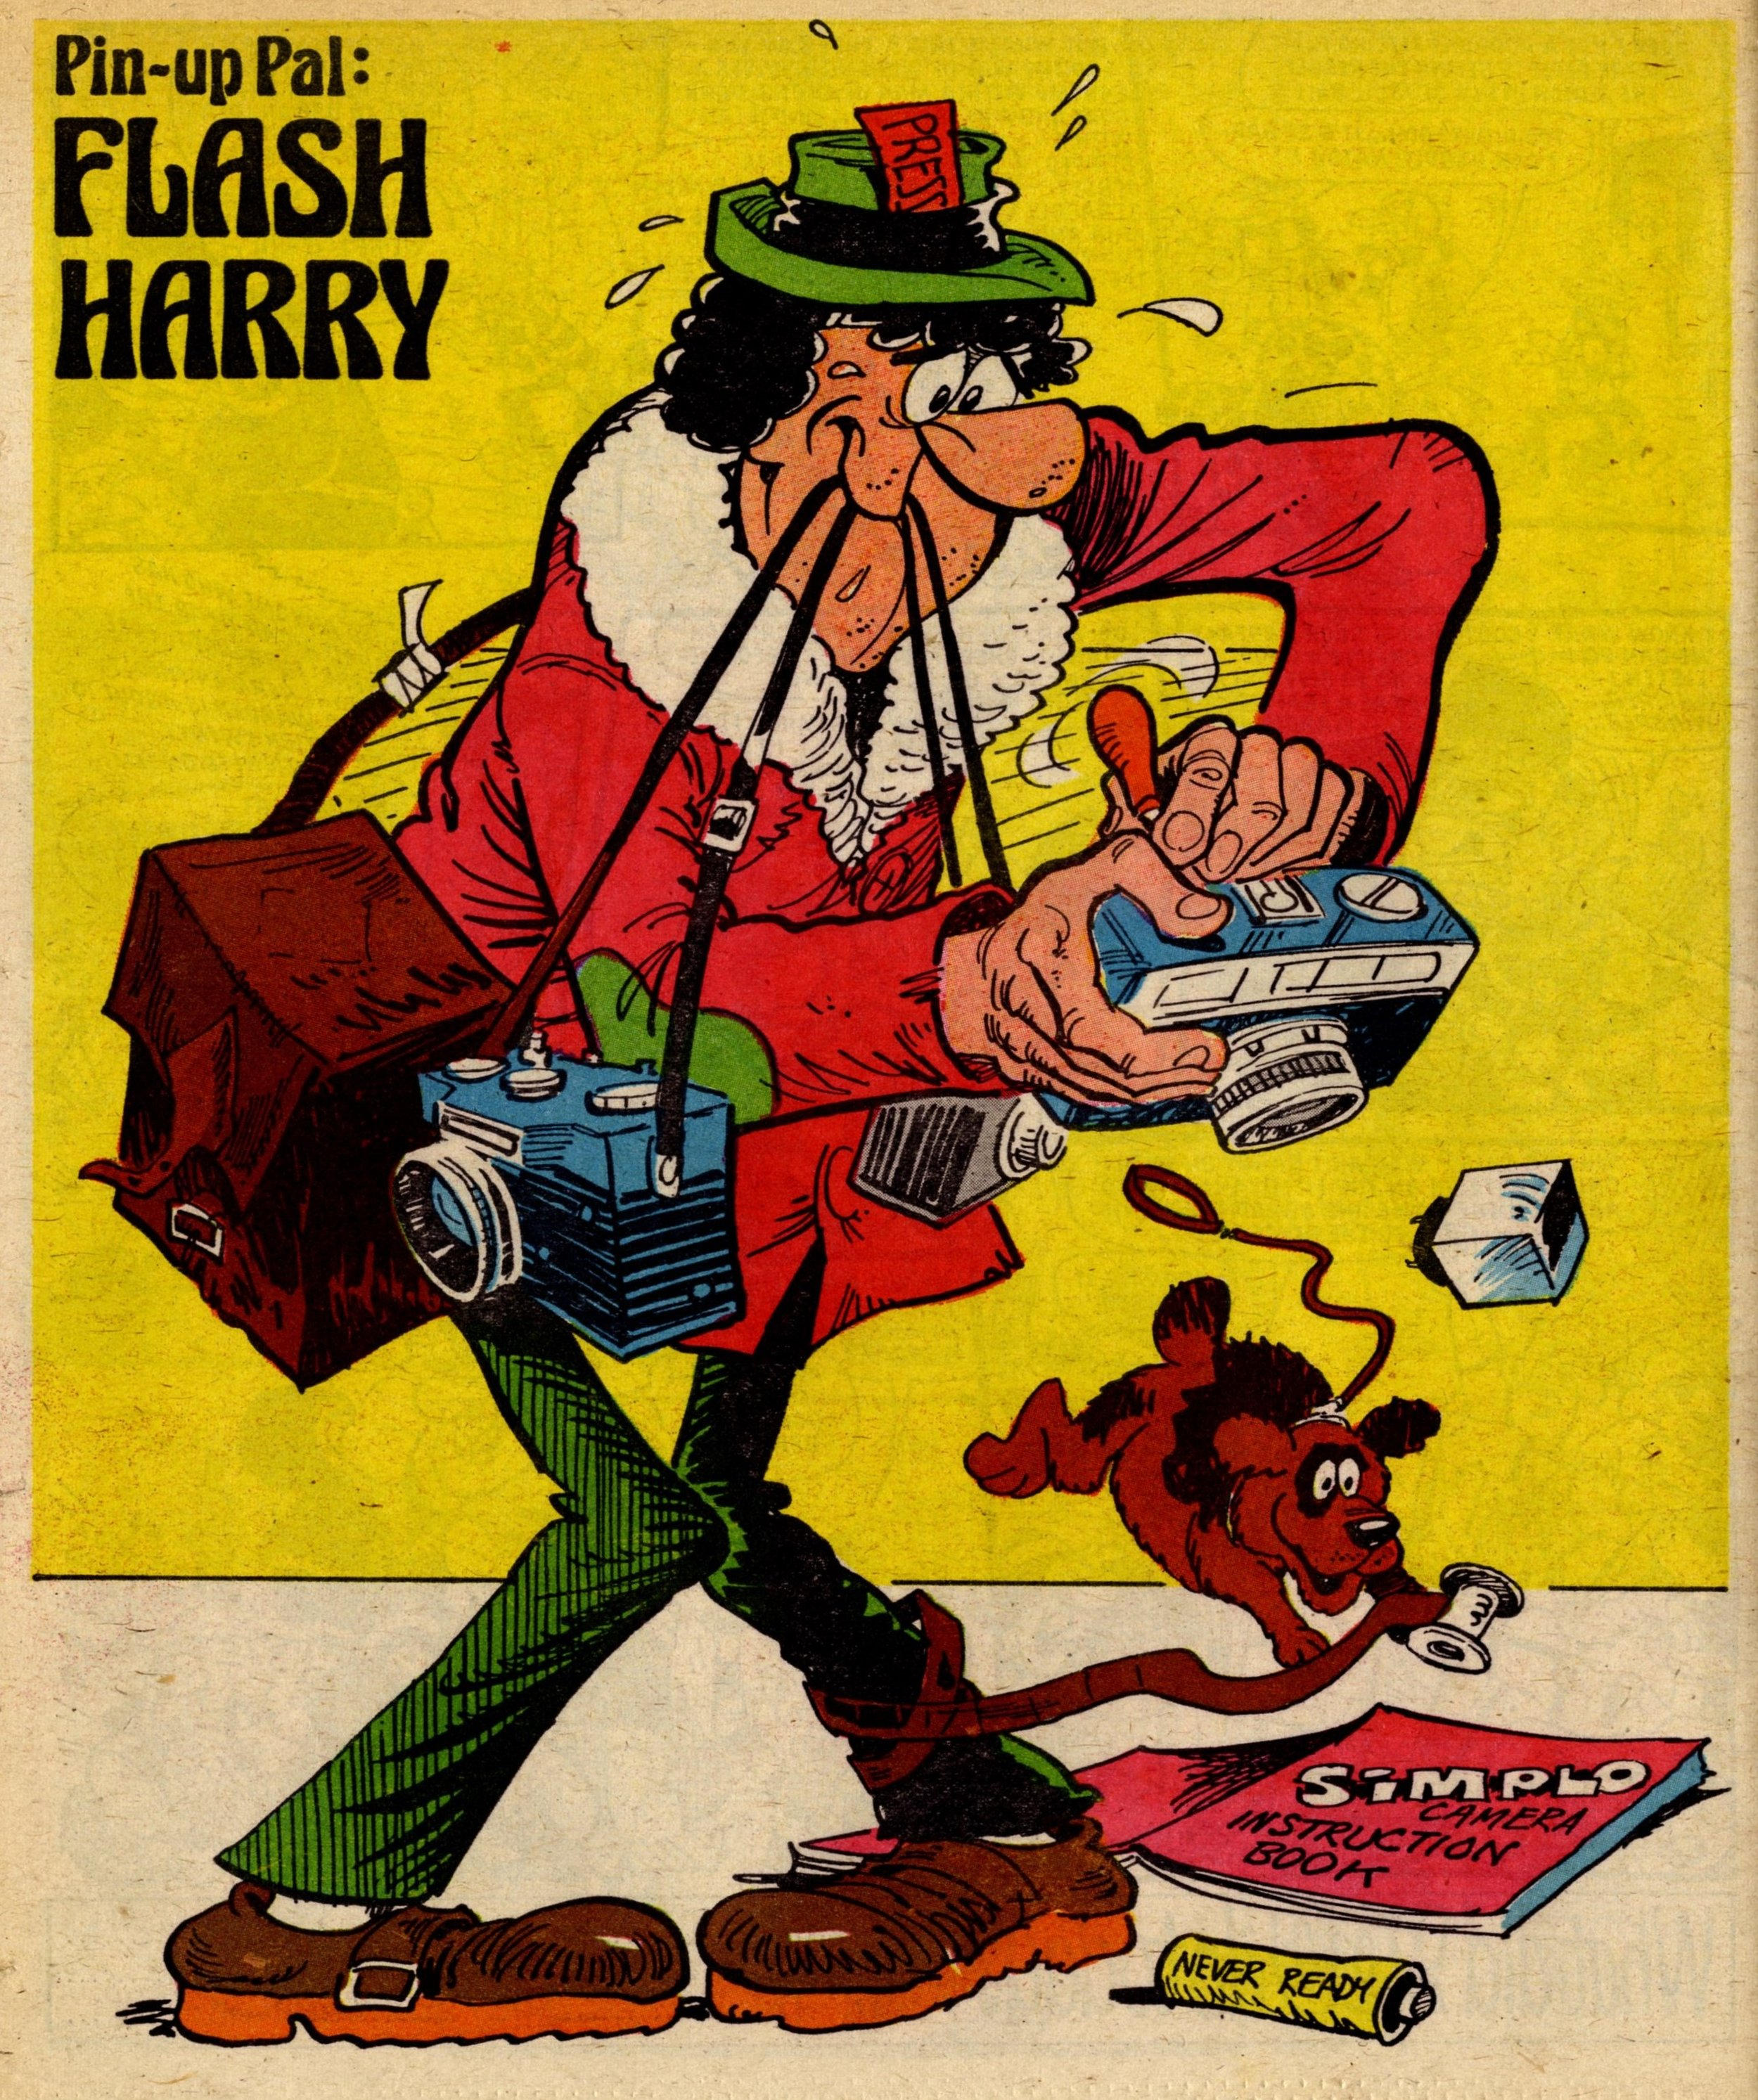 Pin-up Pal: Flash Harry (artist Frank McDiarmid), 9 December 1978